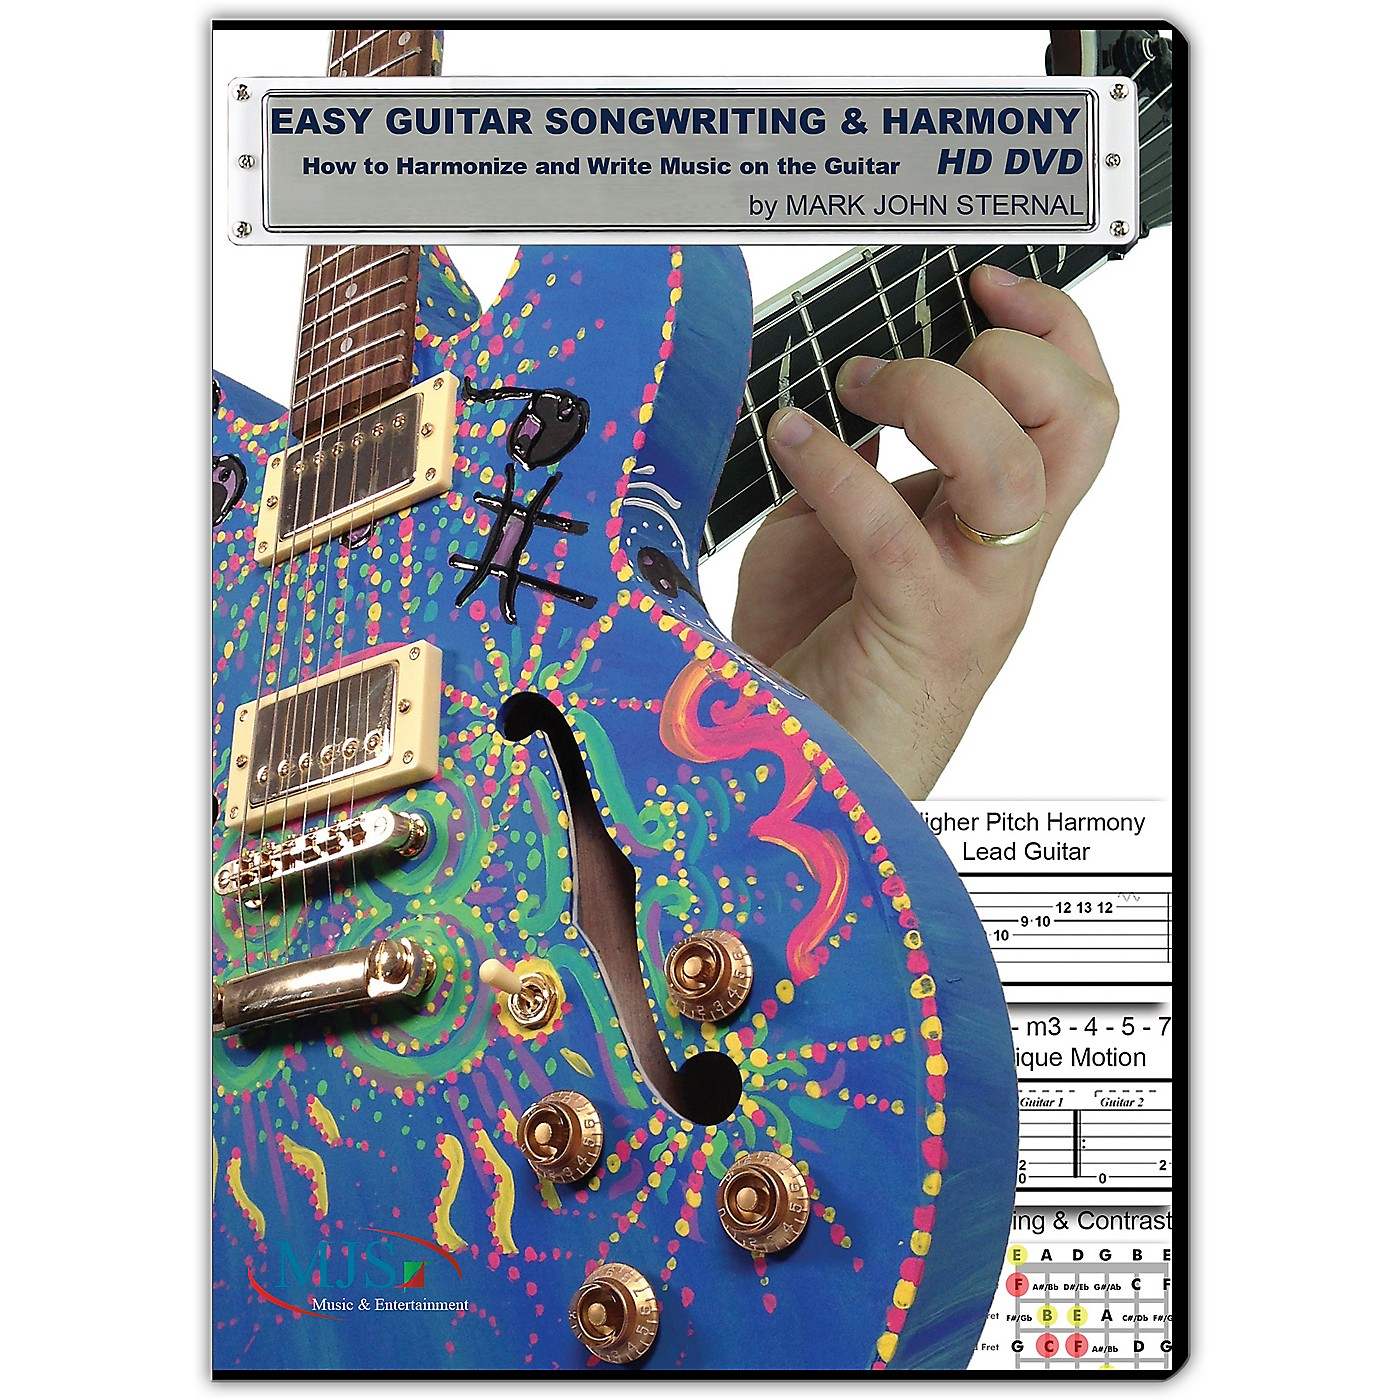 MJS Music Publications EASY GUITAR SONGWRITING DVD: Writing Music and Harmony on the Guitar thumbnail